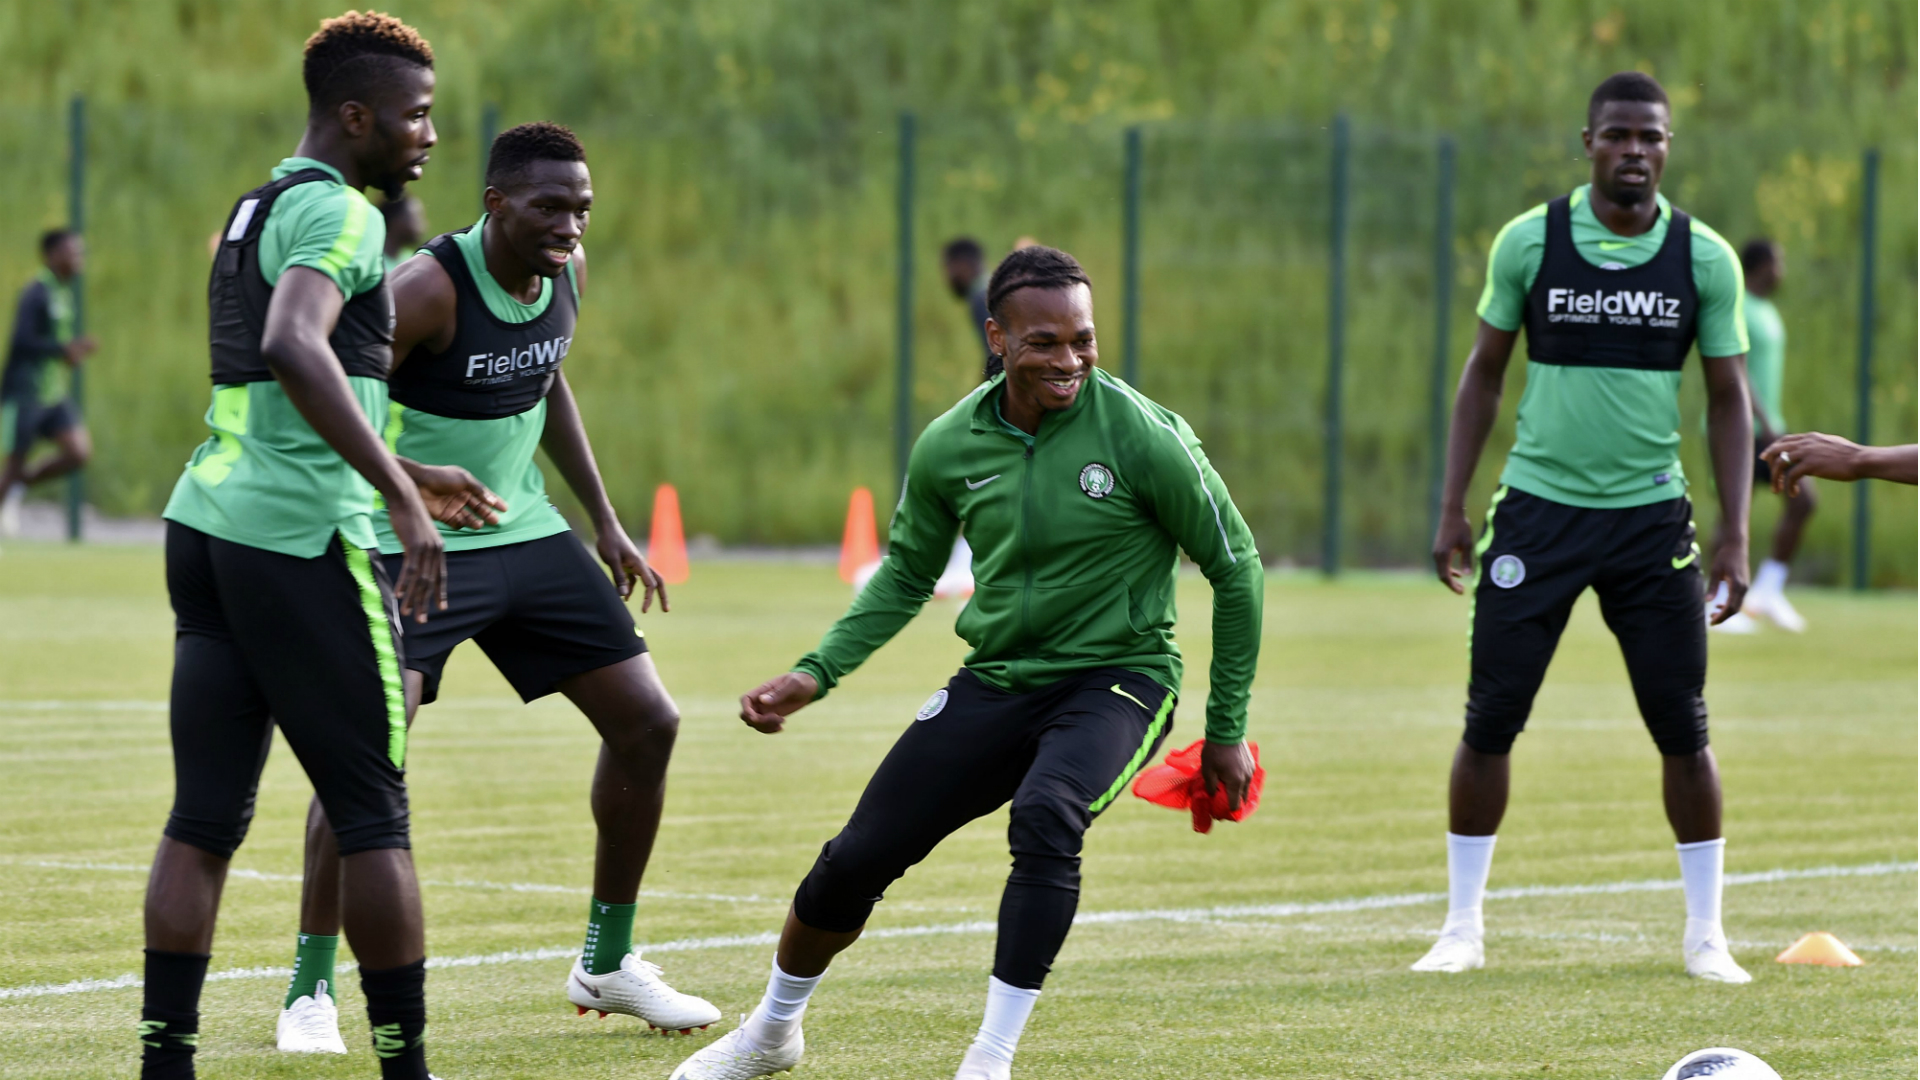 Nigeria must not lose concentration - Rohr seeks flawless outing against Iceland